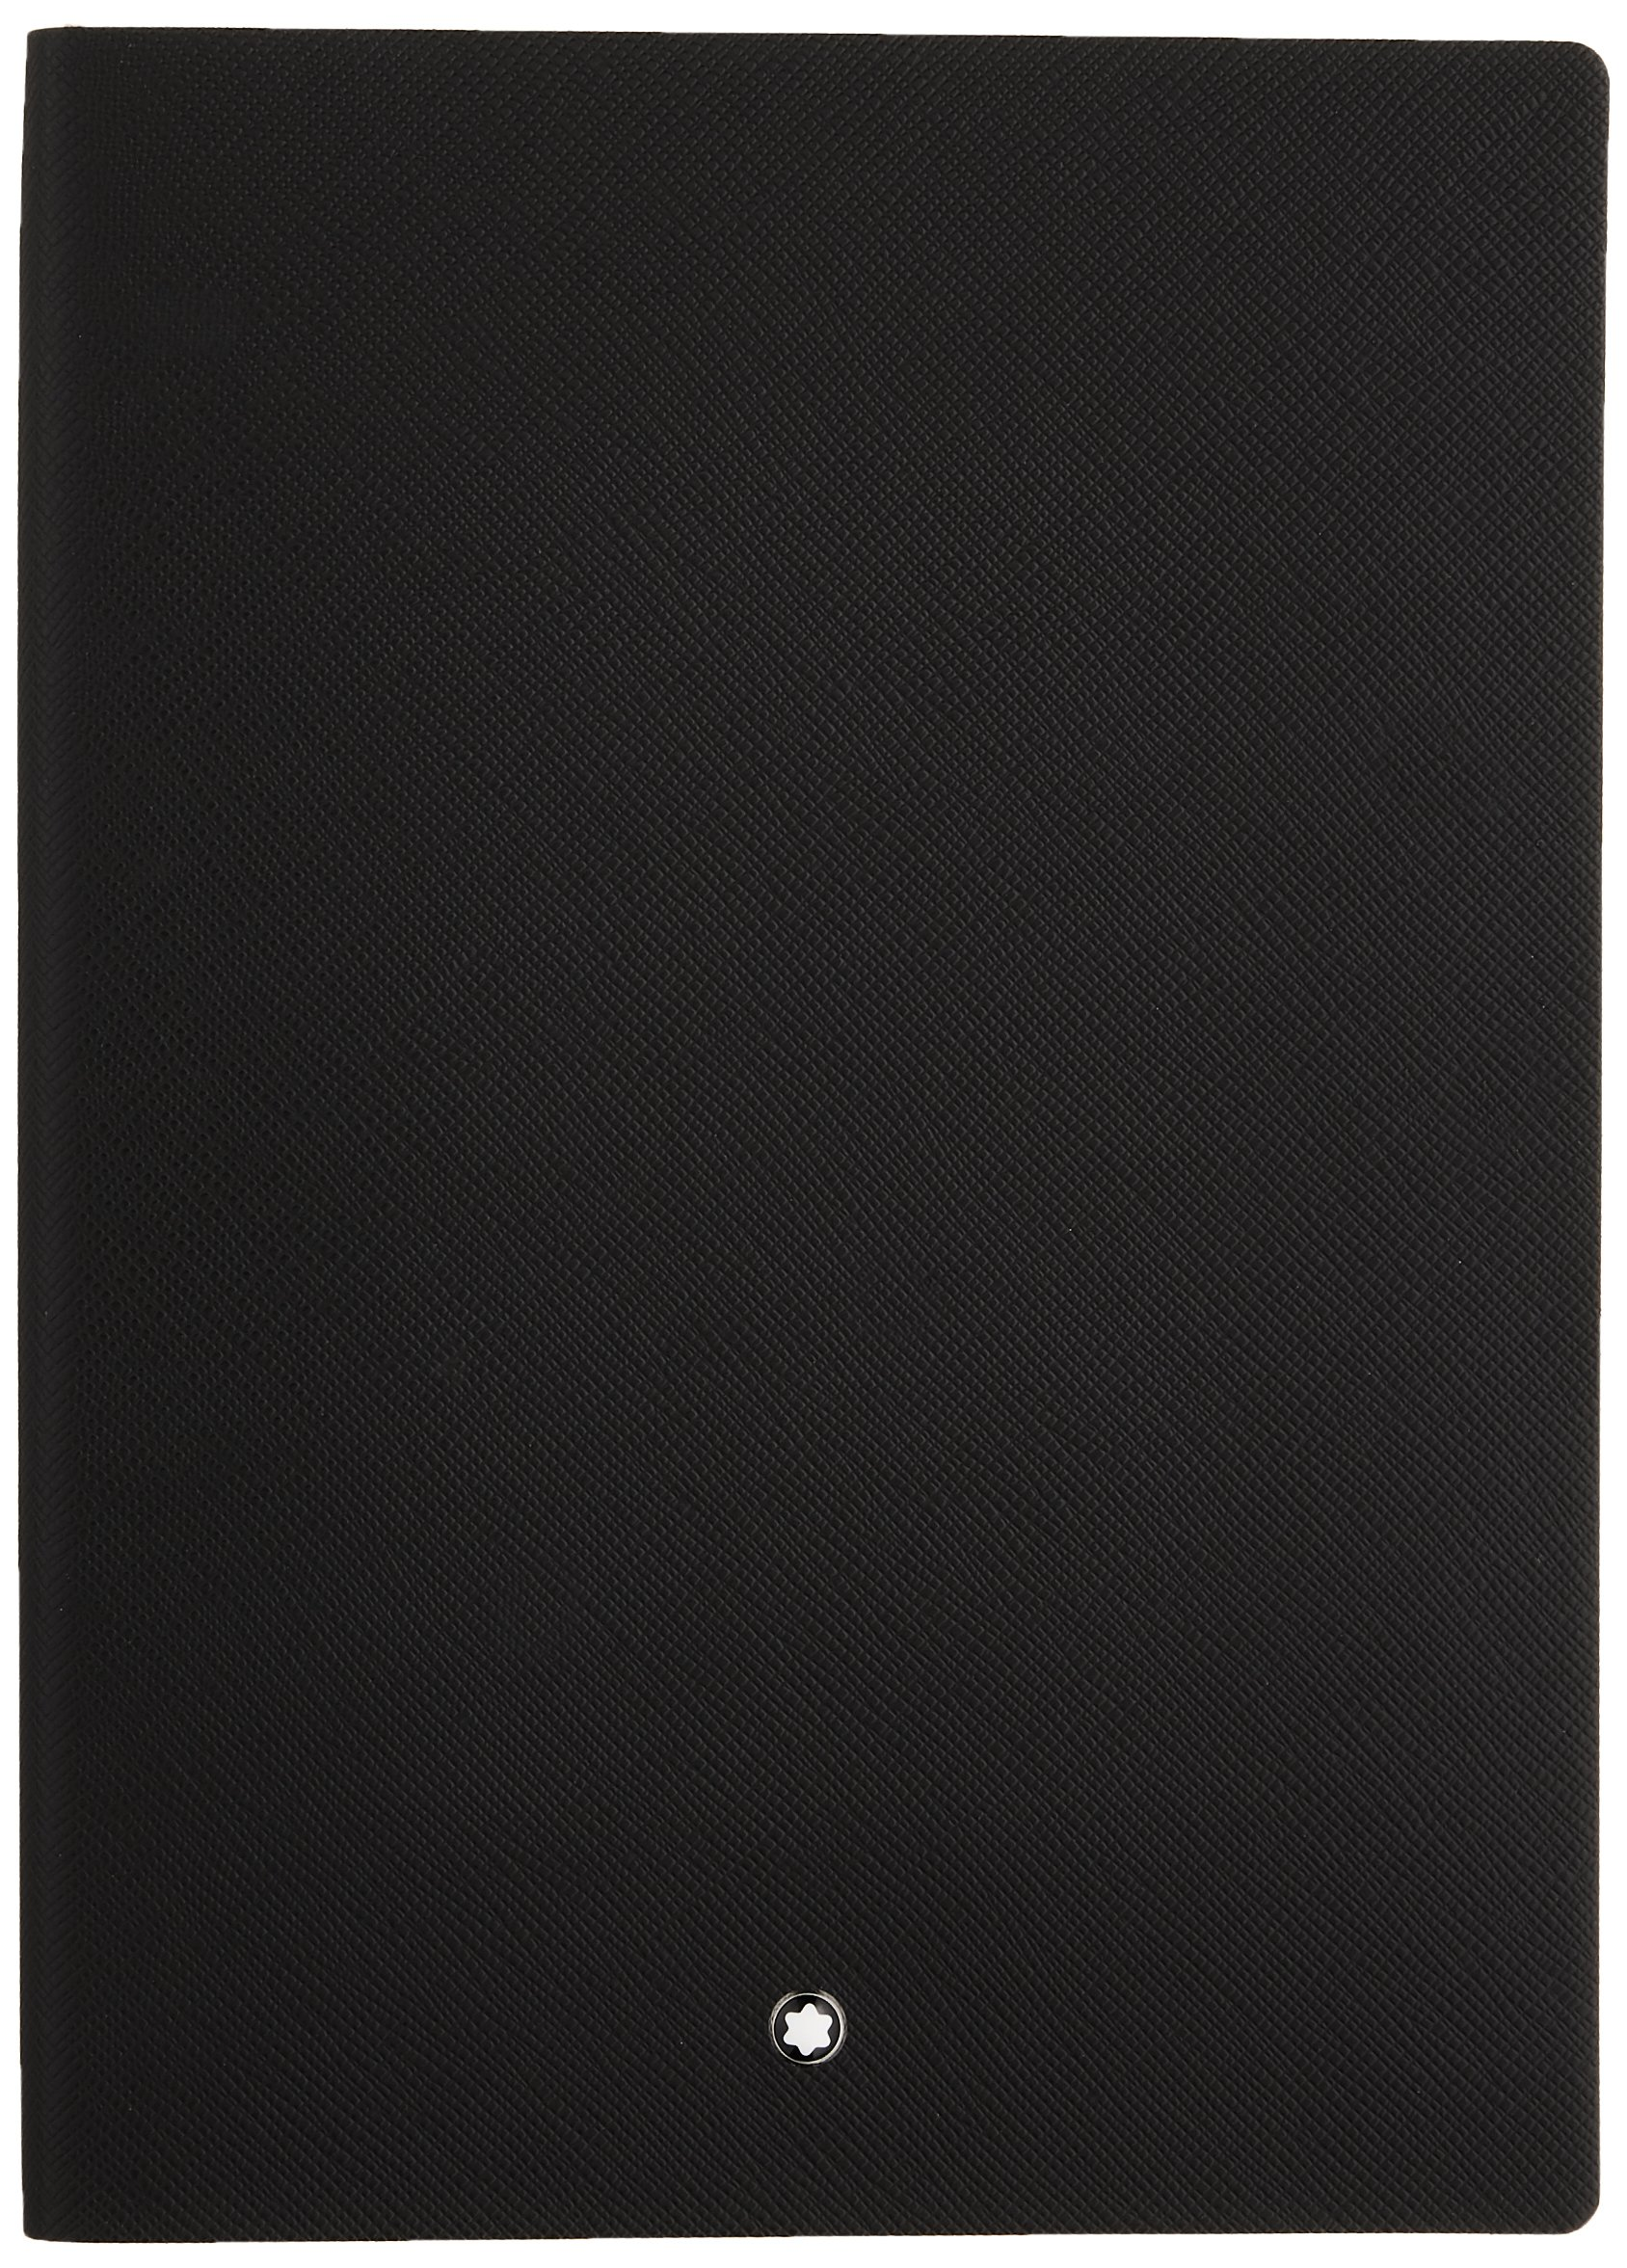 Montblanc Notebook Black Lined #146 Fine Stationery 113294 - Elegant Journal with Leather Binding and Ruled Pages - 1 x (5.9 x 8.2 in.) by MONTBLANC